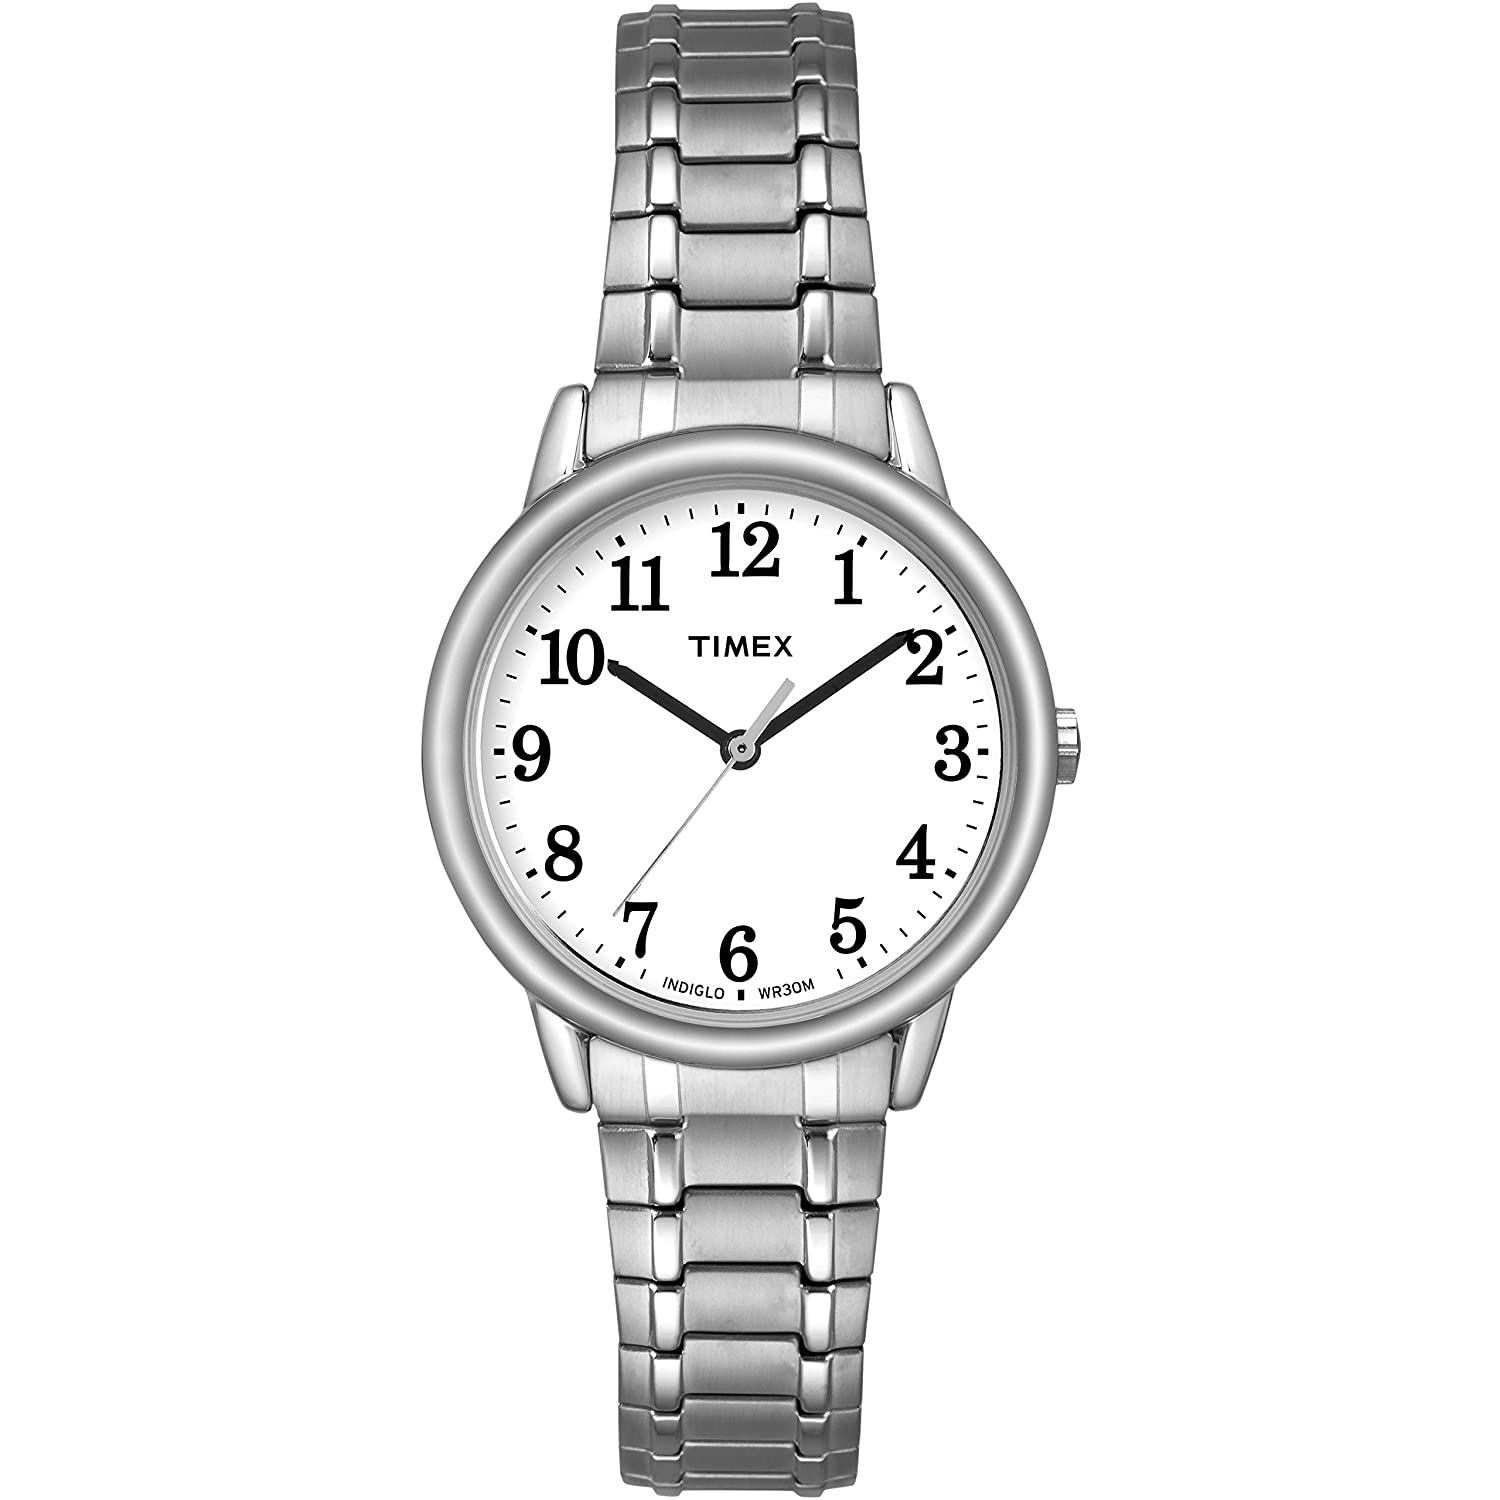 63a29ceab Amazon.com: Timex Women's TW2R58900 Easy Reader 31mm Gold-Tone Stainless  Steel Expansion Band Watch: Watches